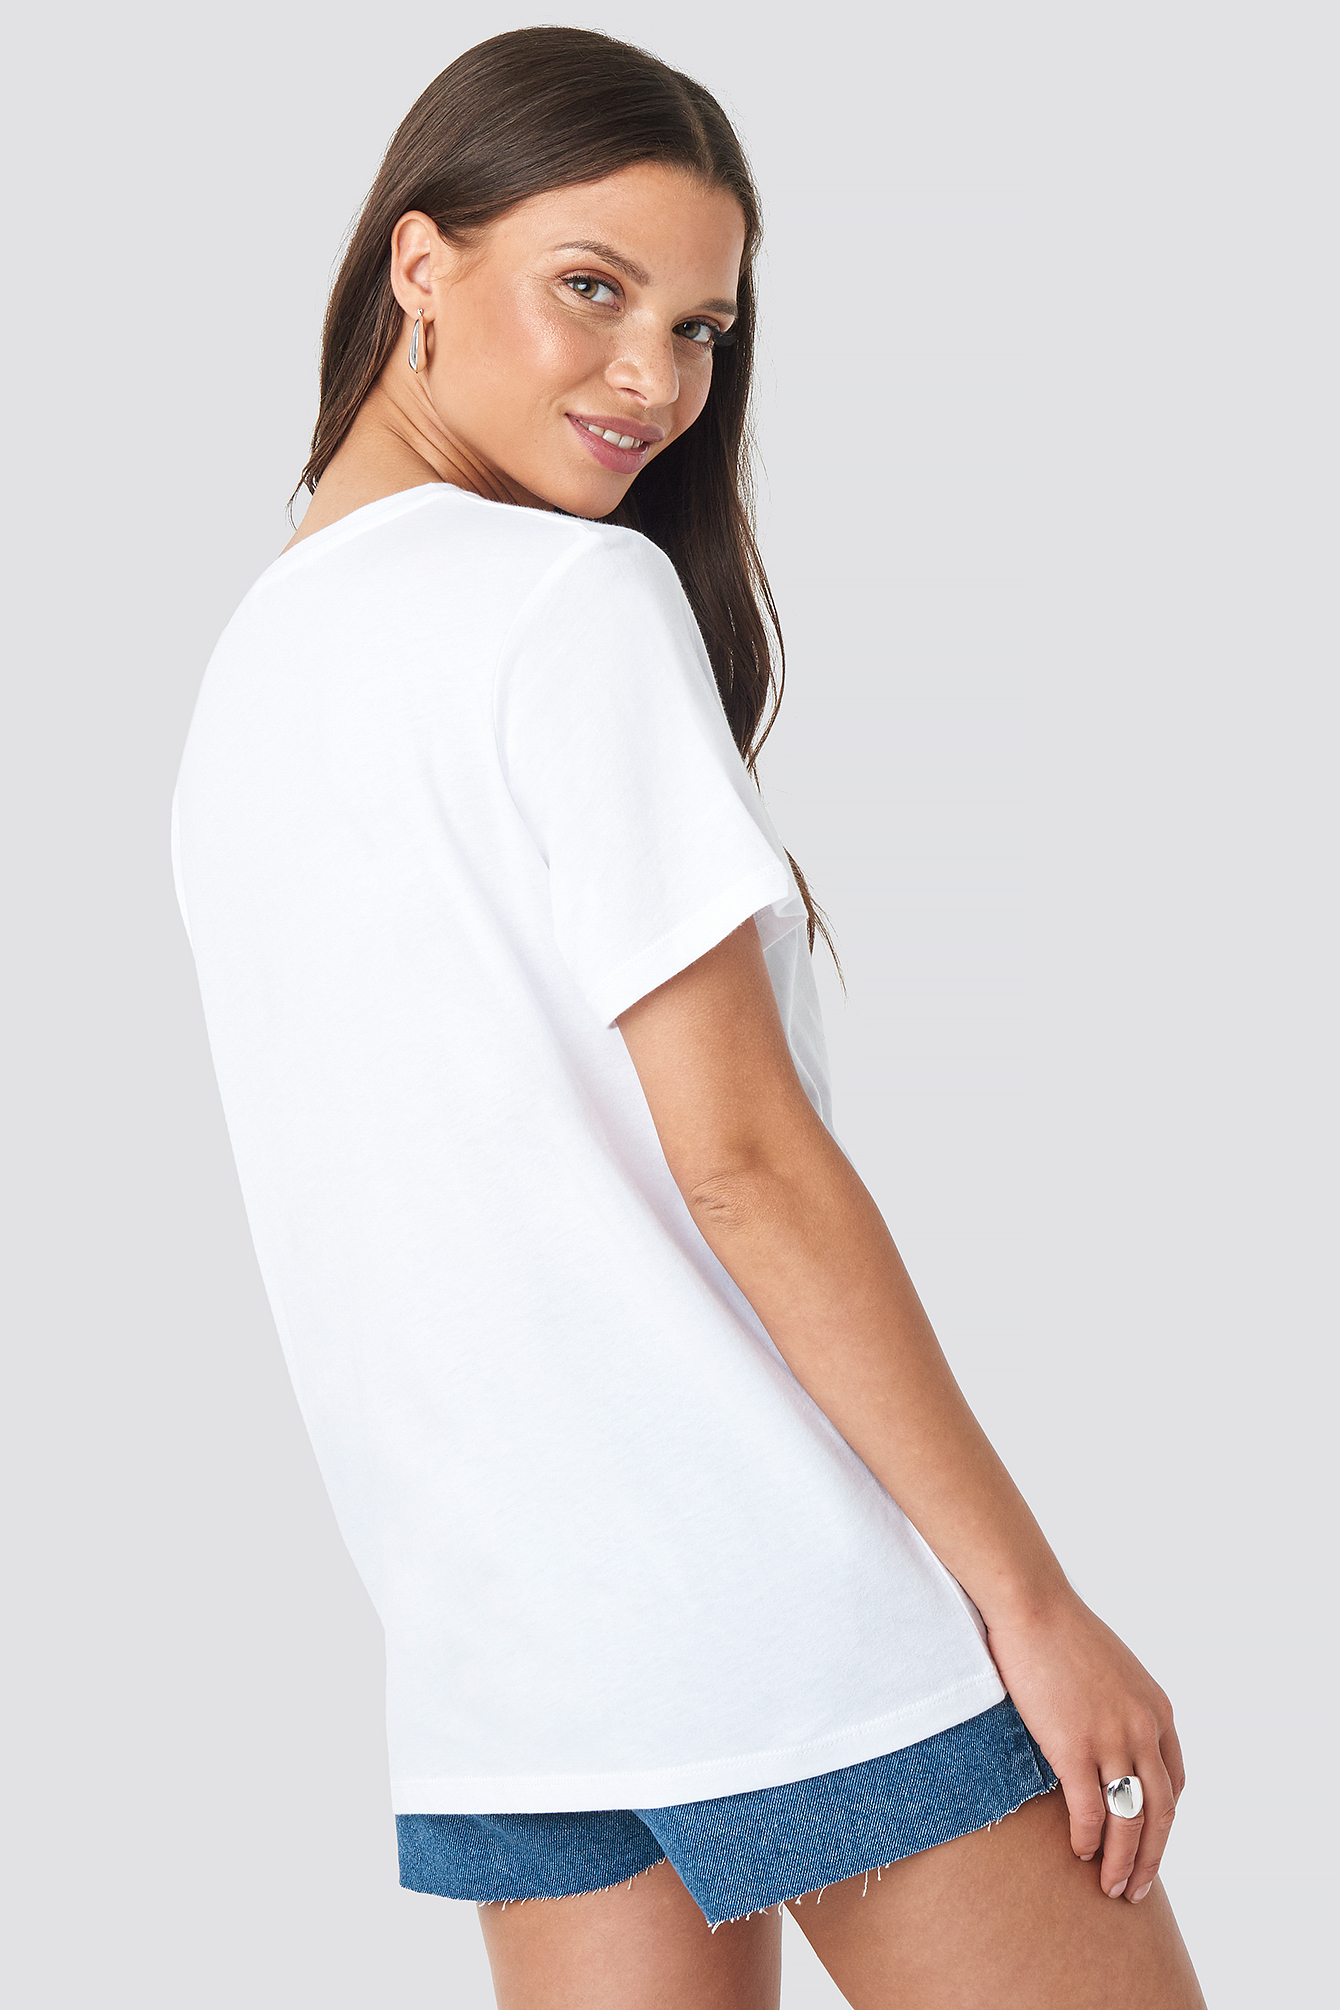 White/Blue Vigorous Tee